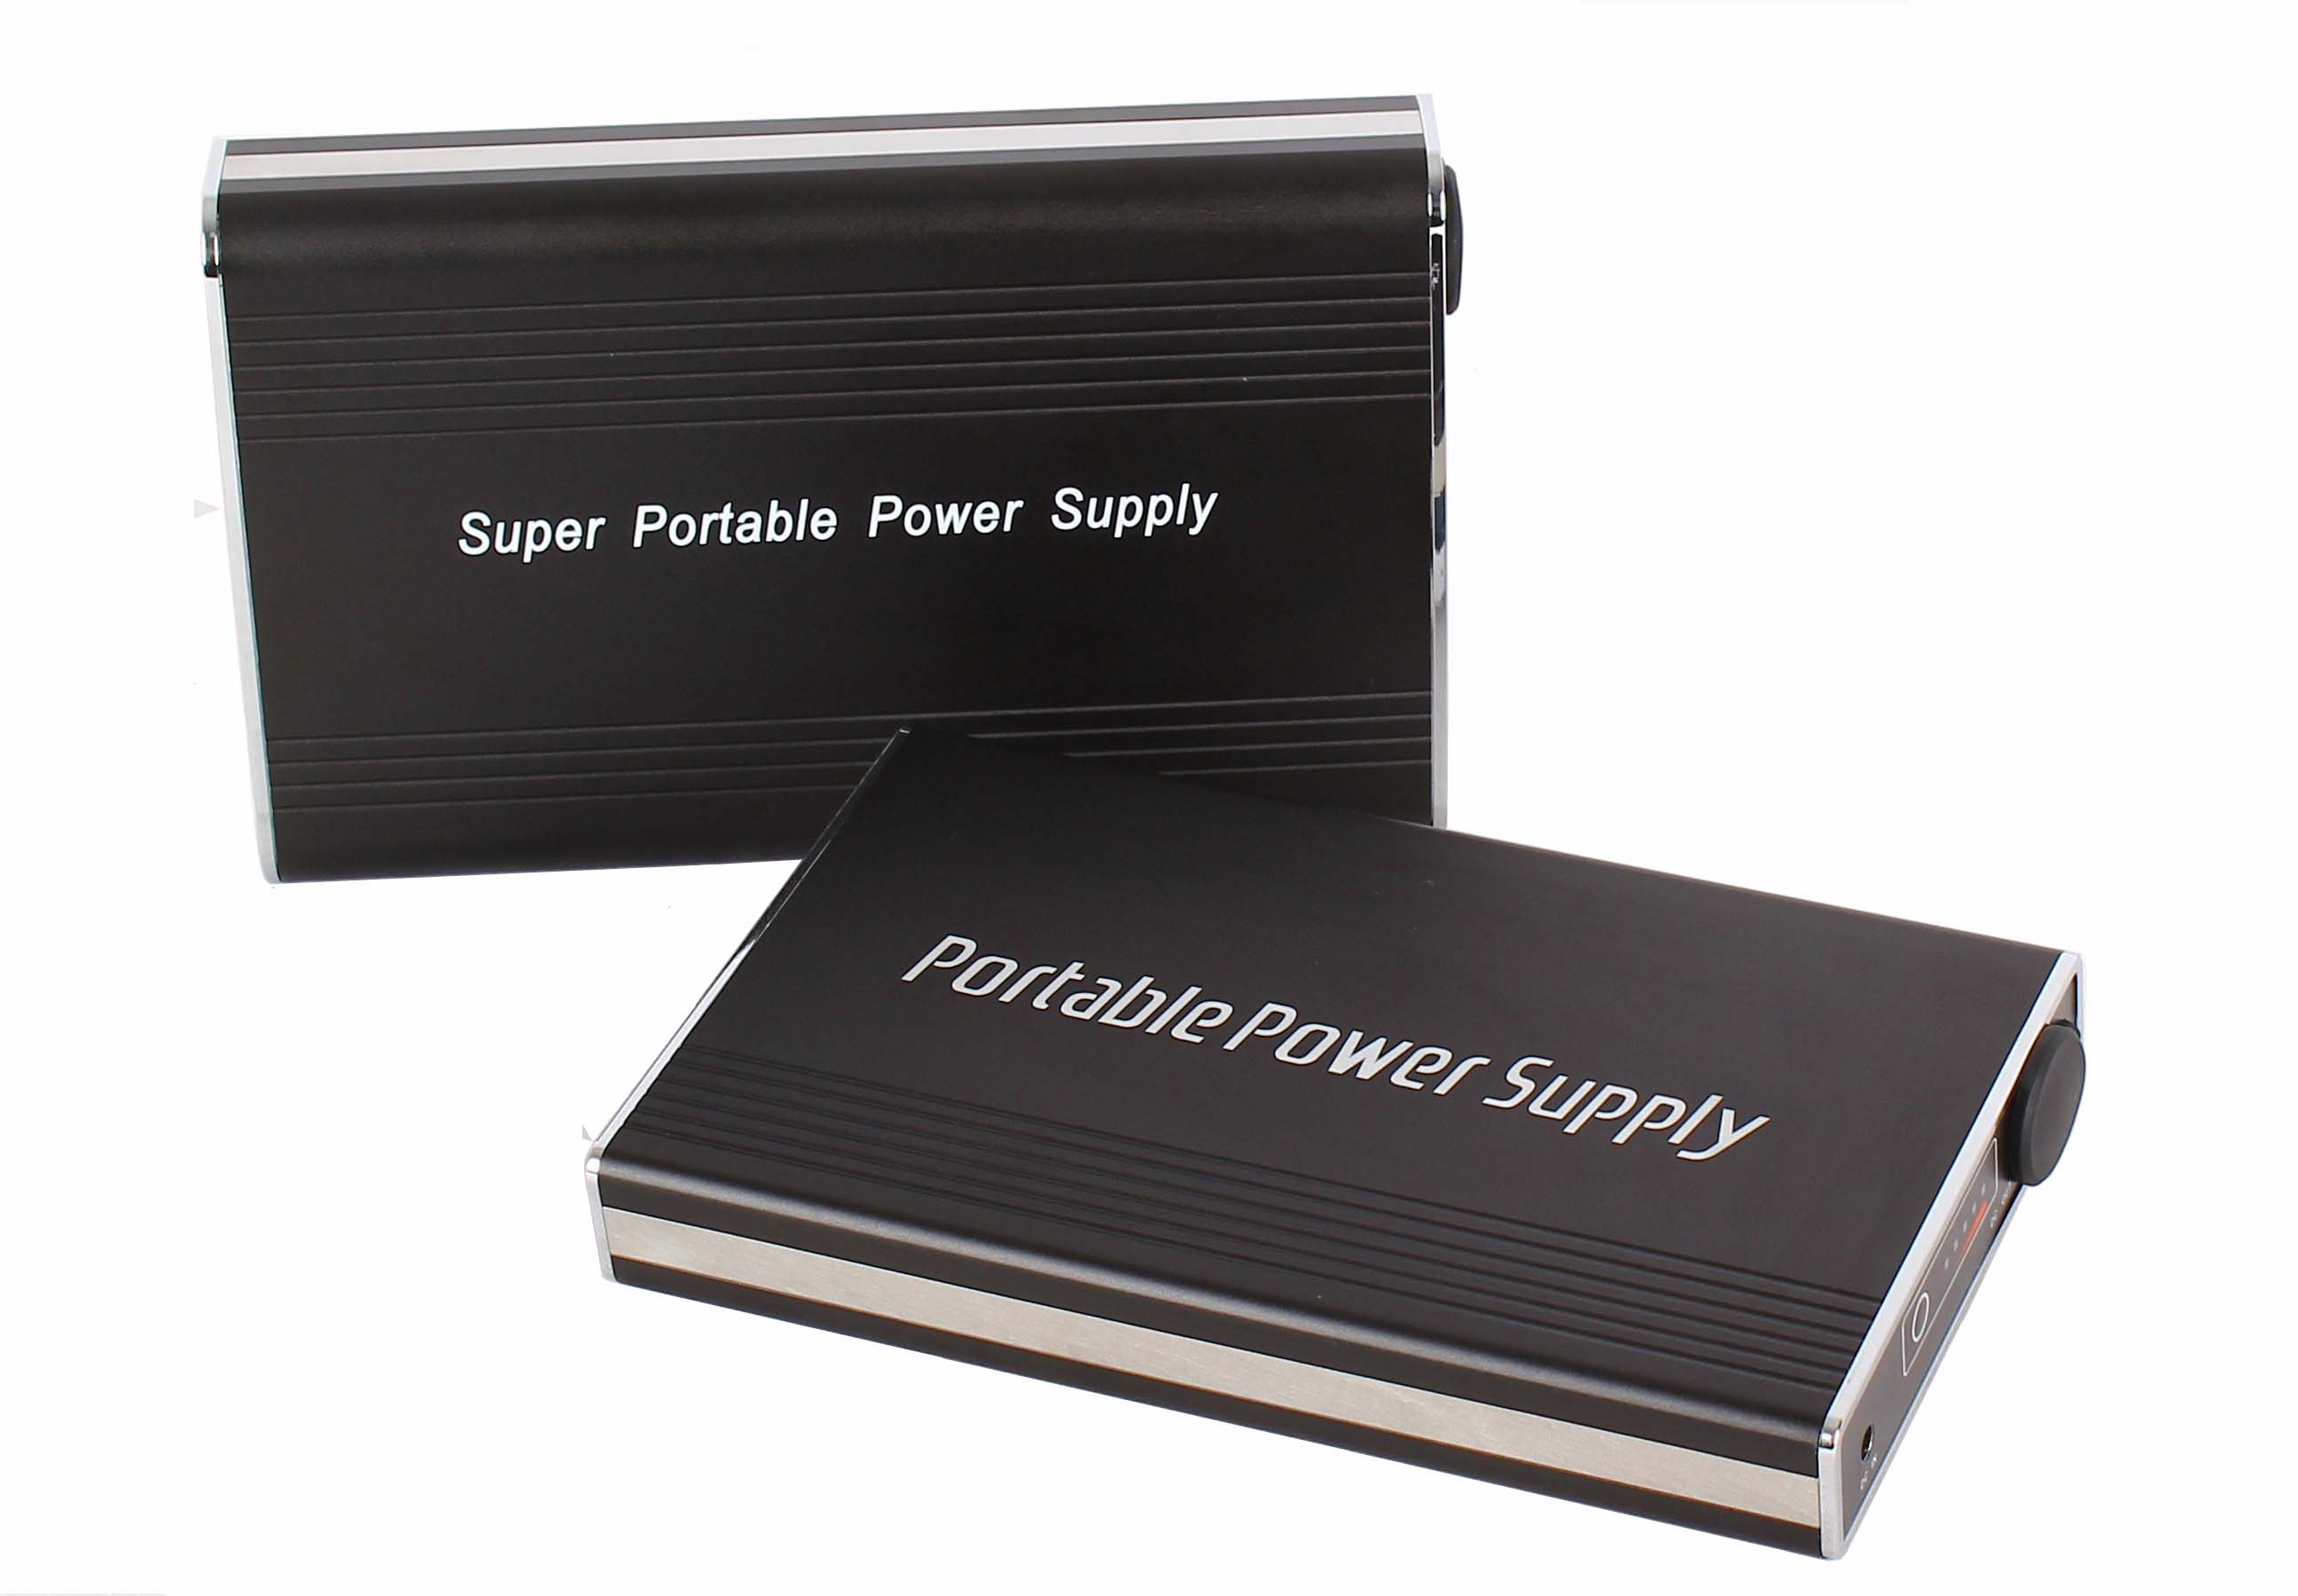 266WH High Quality Portable rechargeable 12v dc battery pack